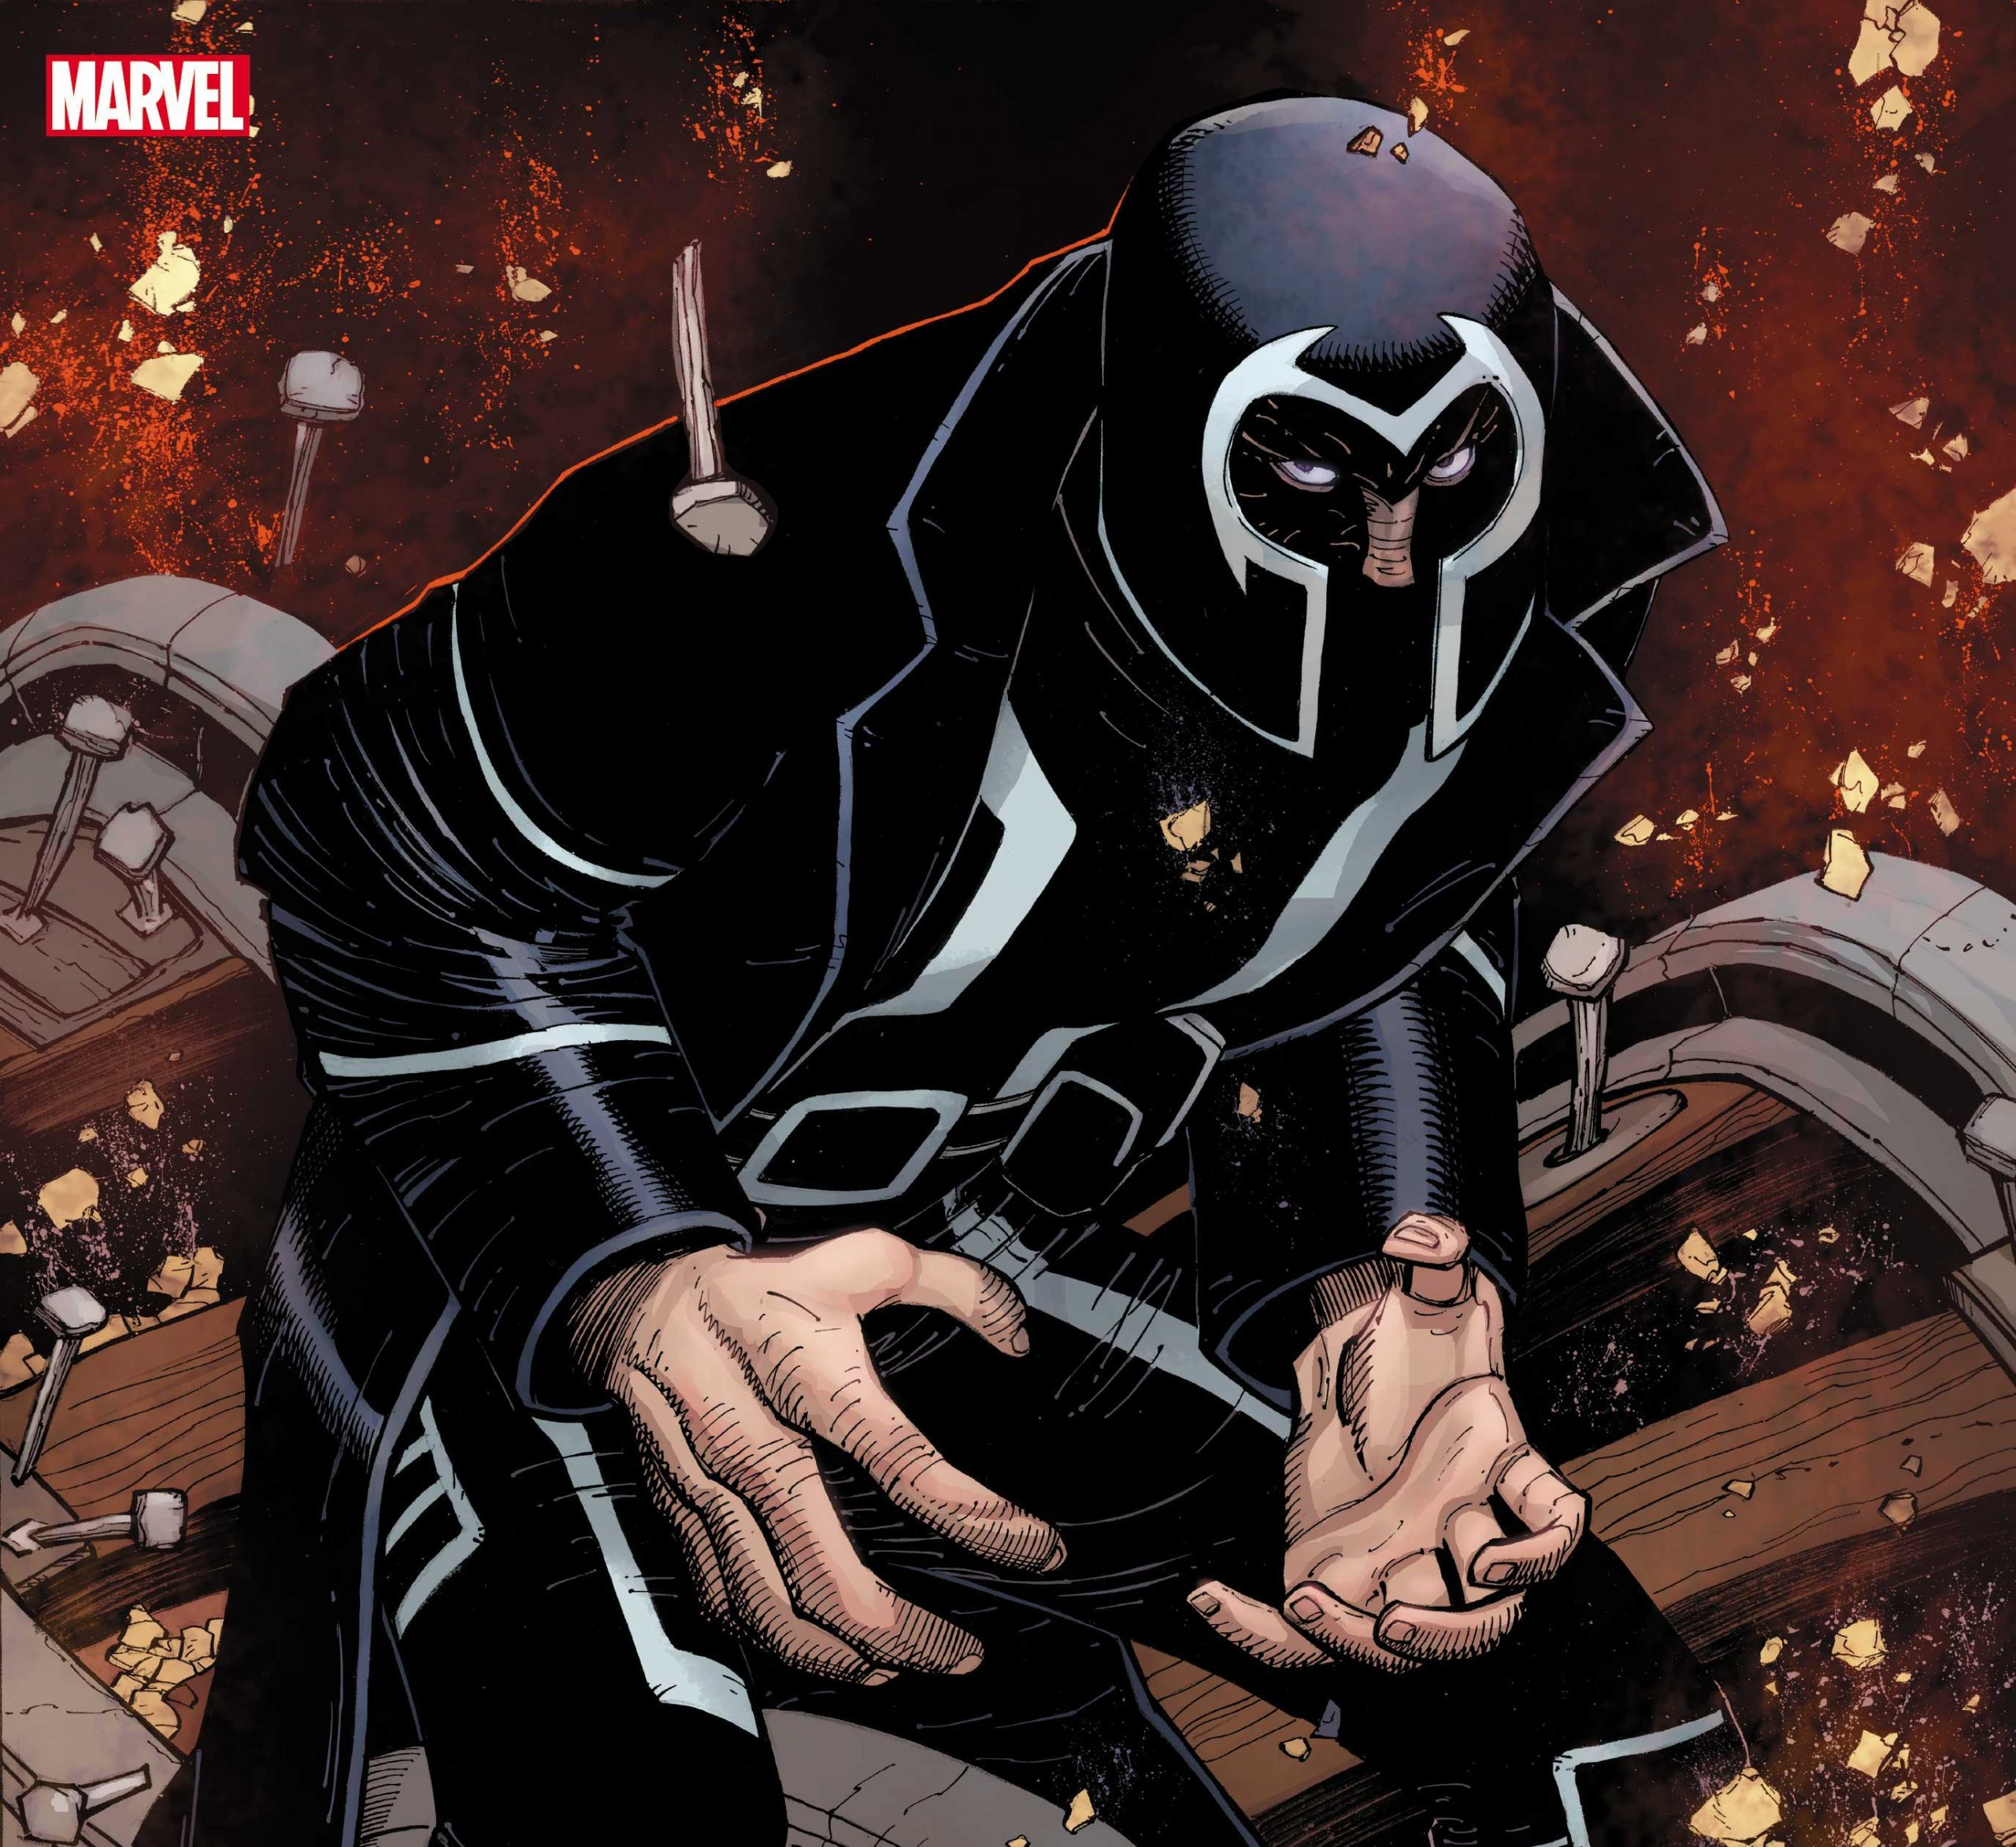 Marvel teases new series 'The Trial of Magneto' for August 2021